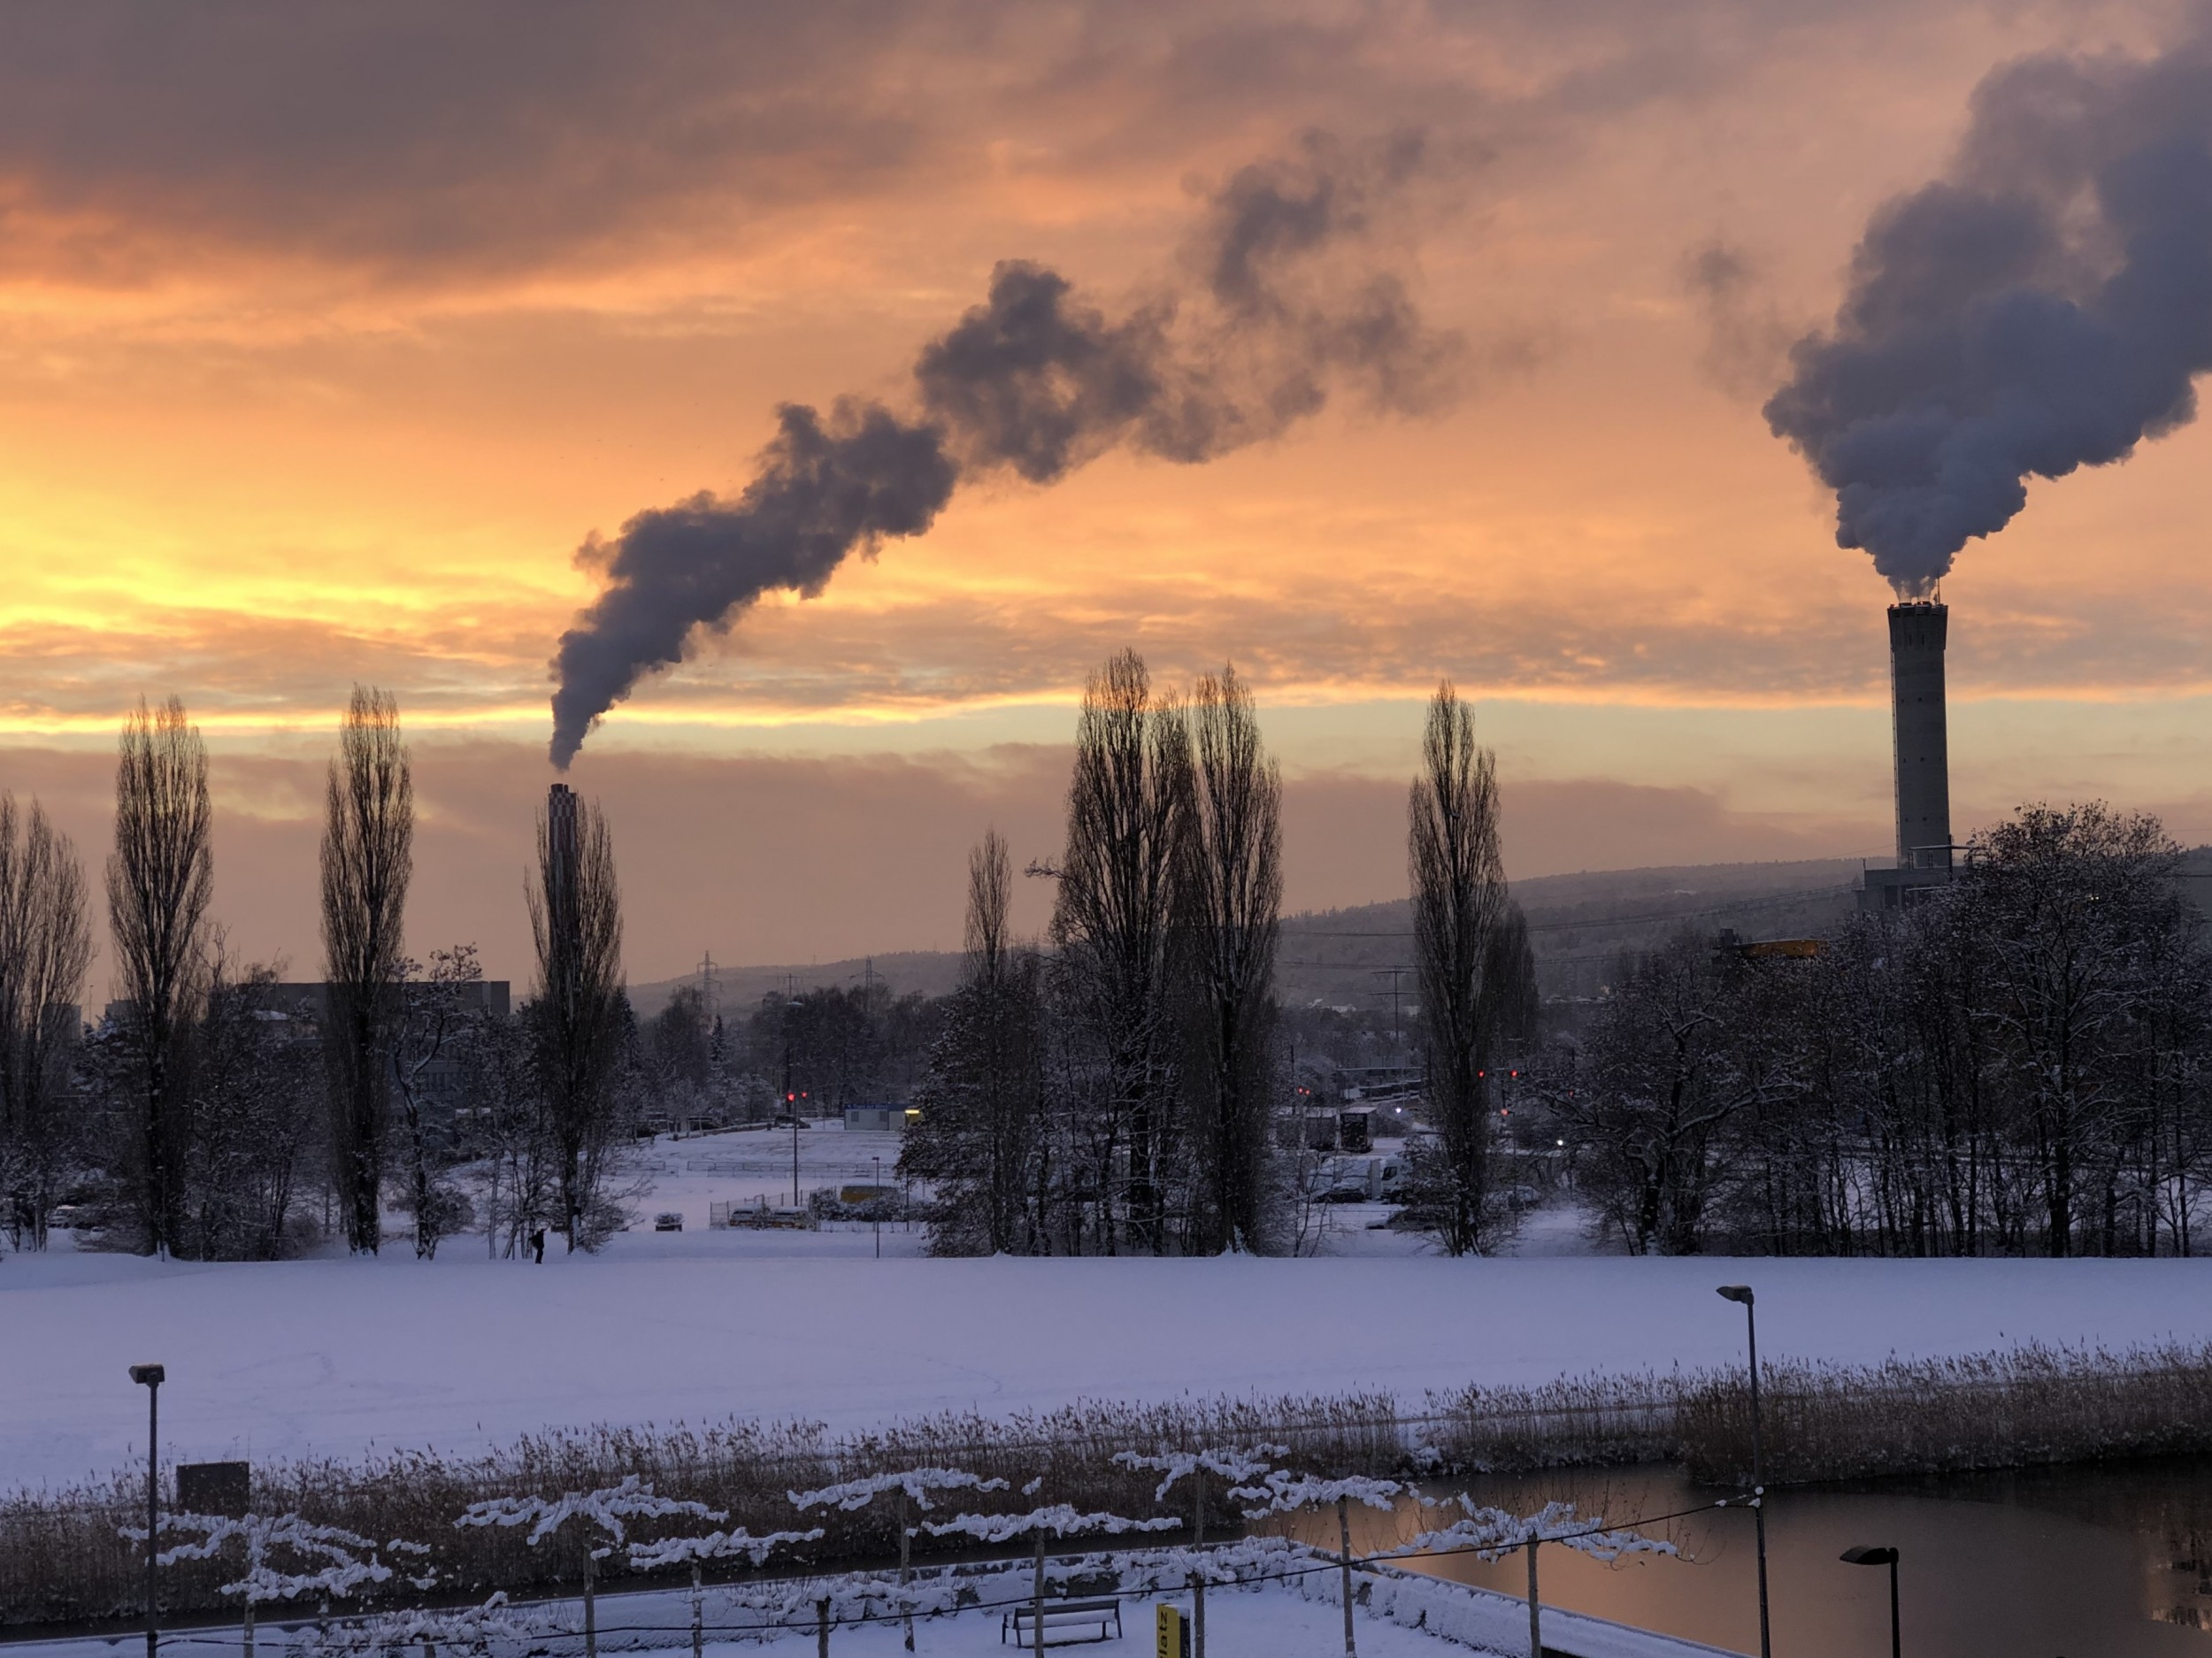 The positive side of waste: at the Hagenholz waste incineration plant in Zurich (right), the incineration heat is captured and utilised. Together with the Aubrugg wood-fired power plant (left in the image), the plant supplies the majority of the district heating grid of the city of Zurich.